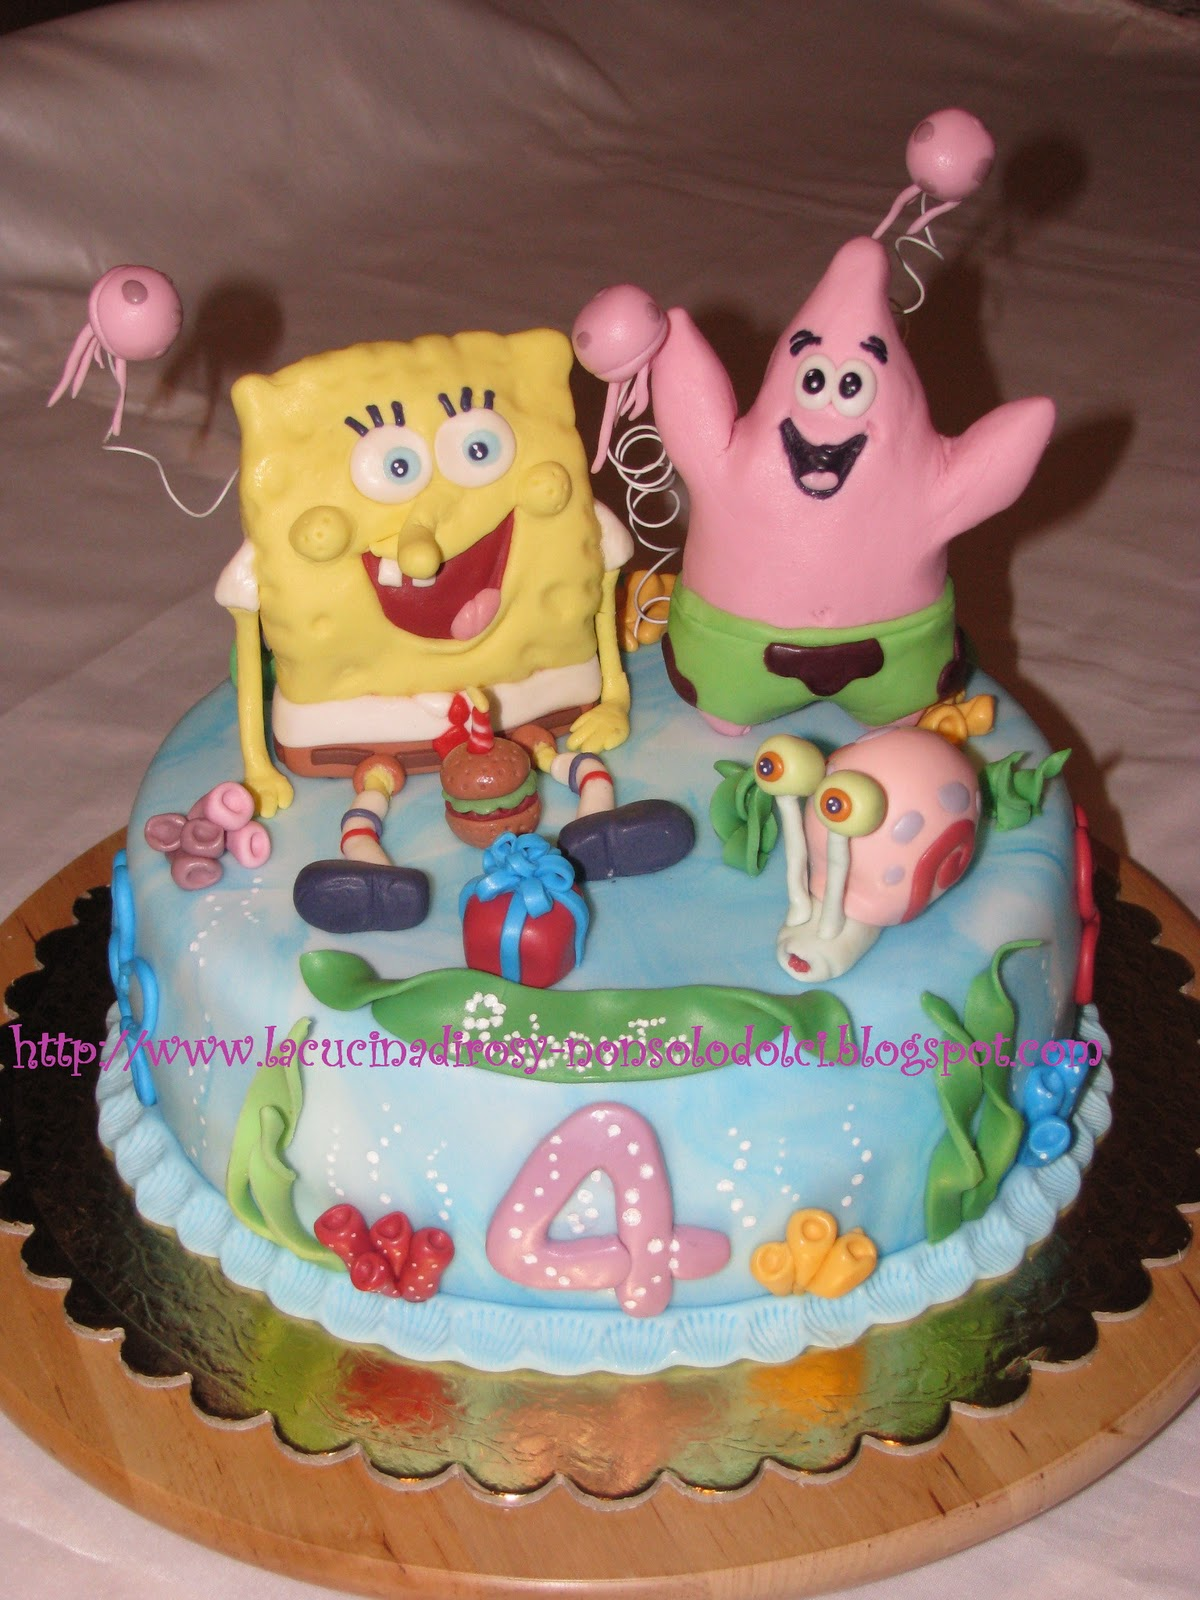 Le torte decorate di rosy spongebob cake for Decorazioni torte ladybug